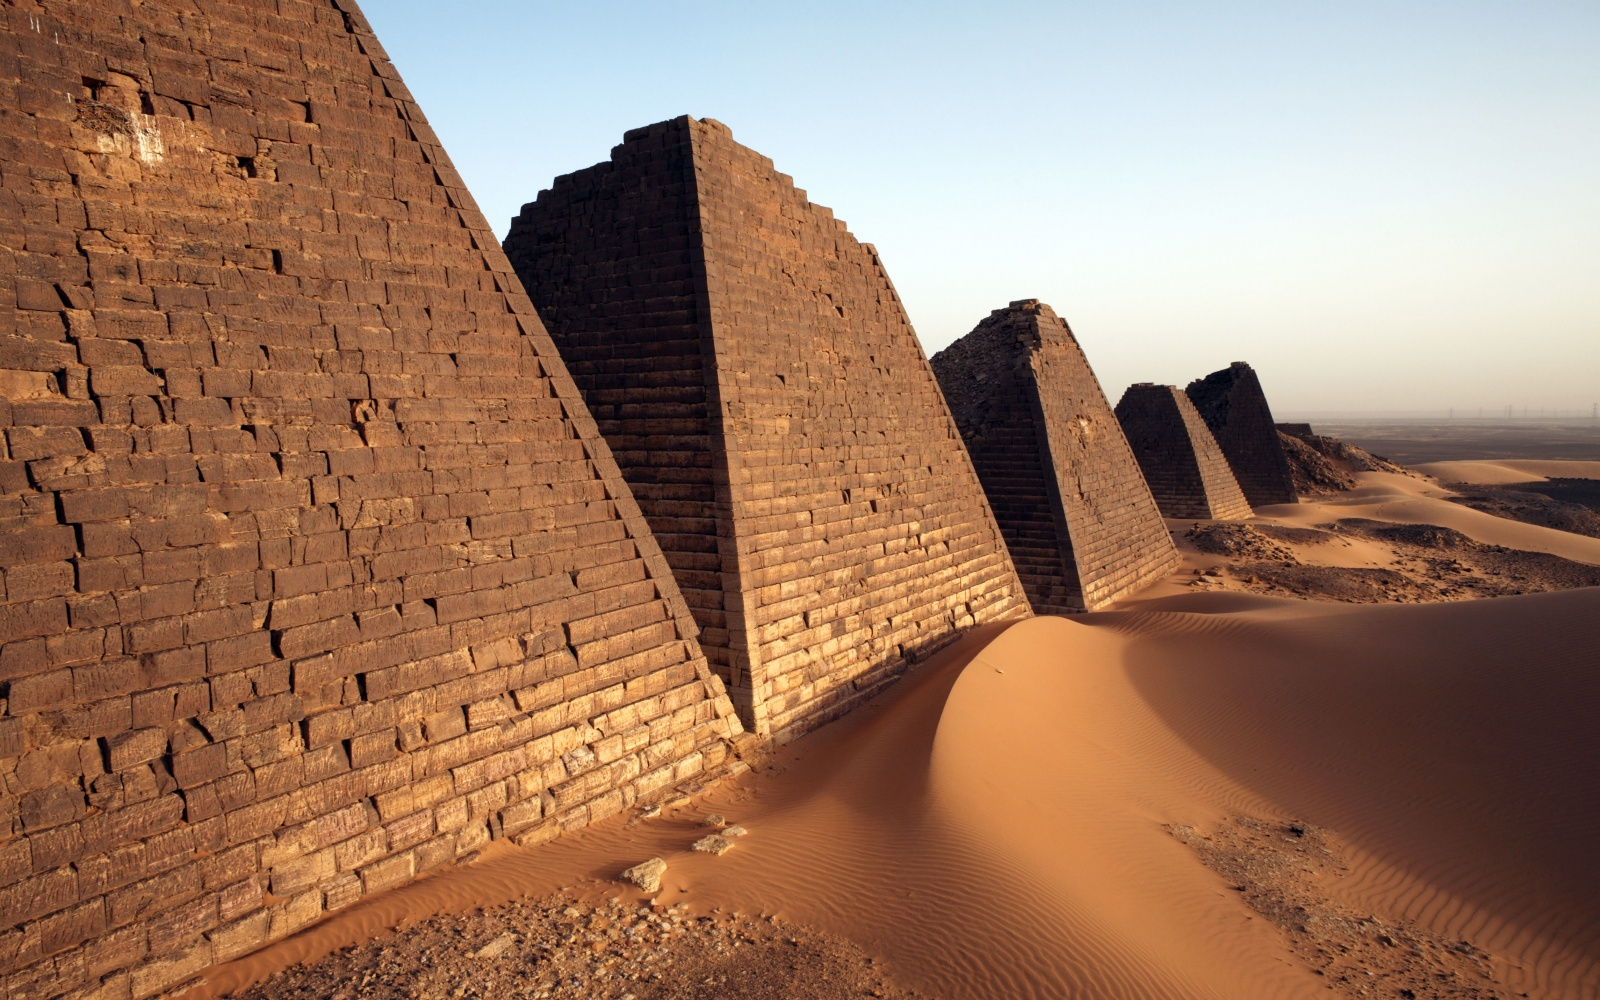 The Sudanese Pyramids